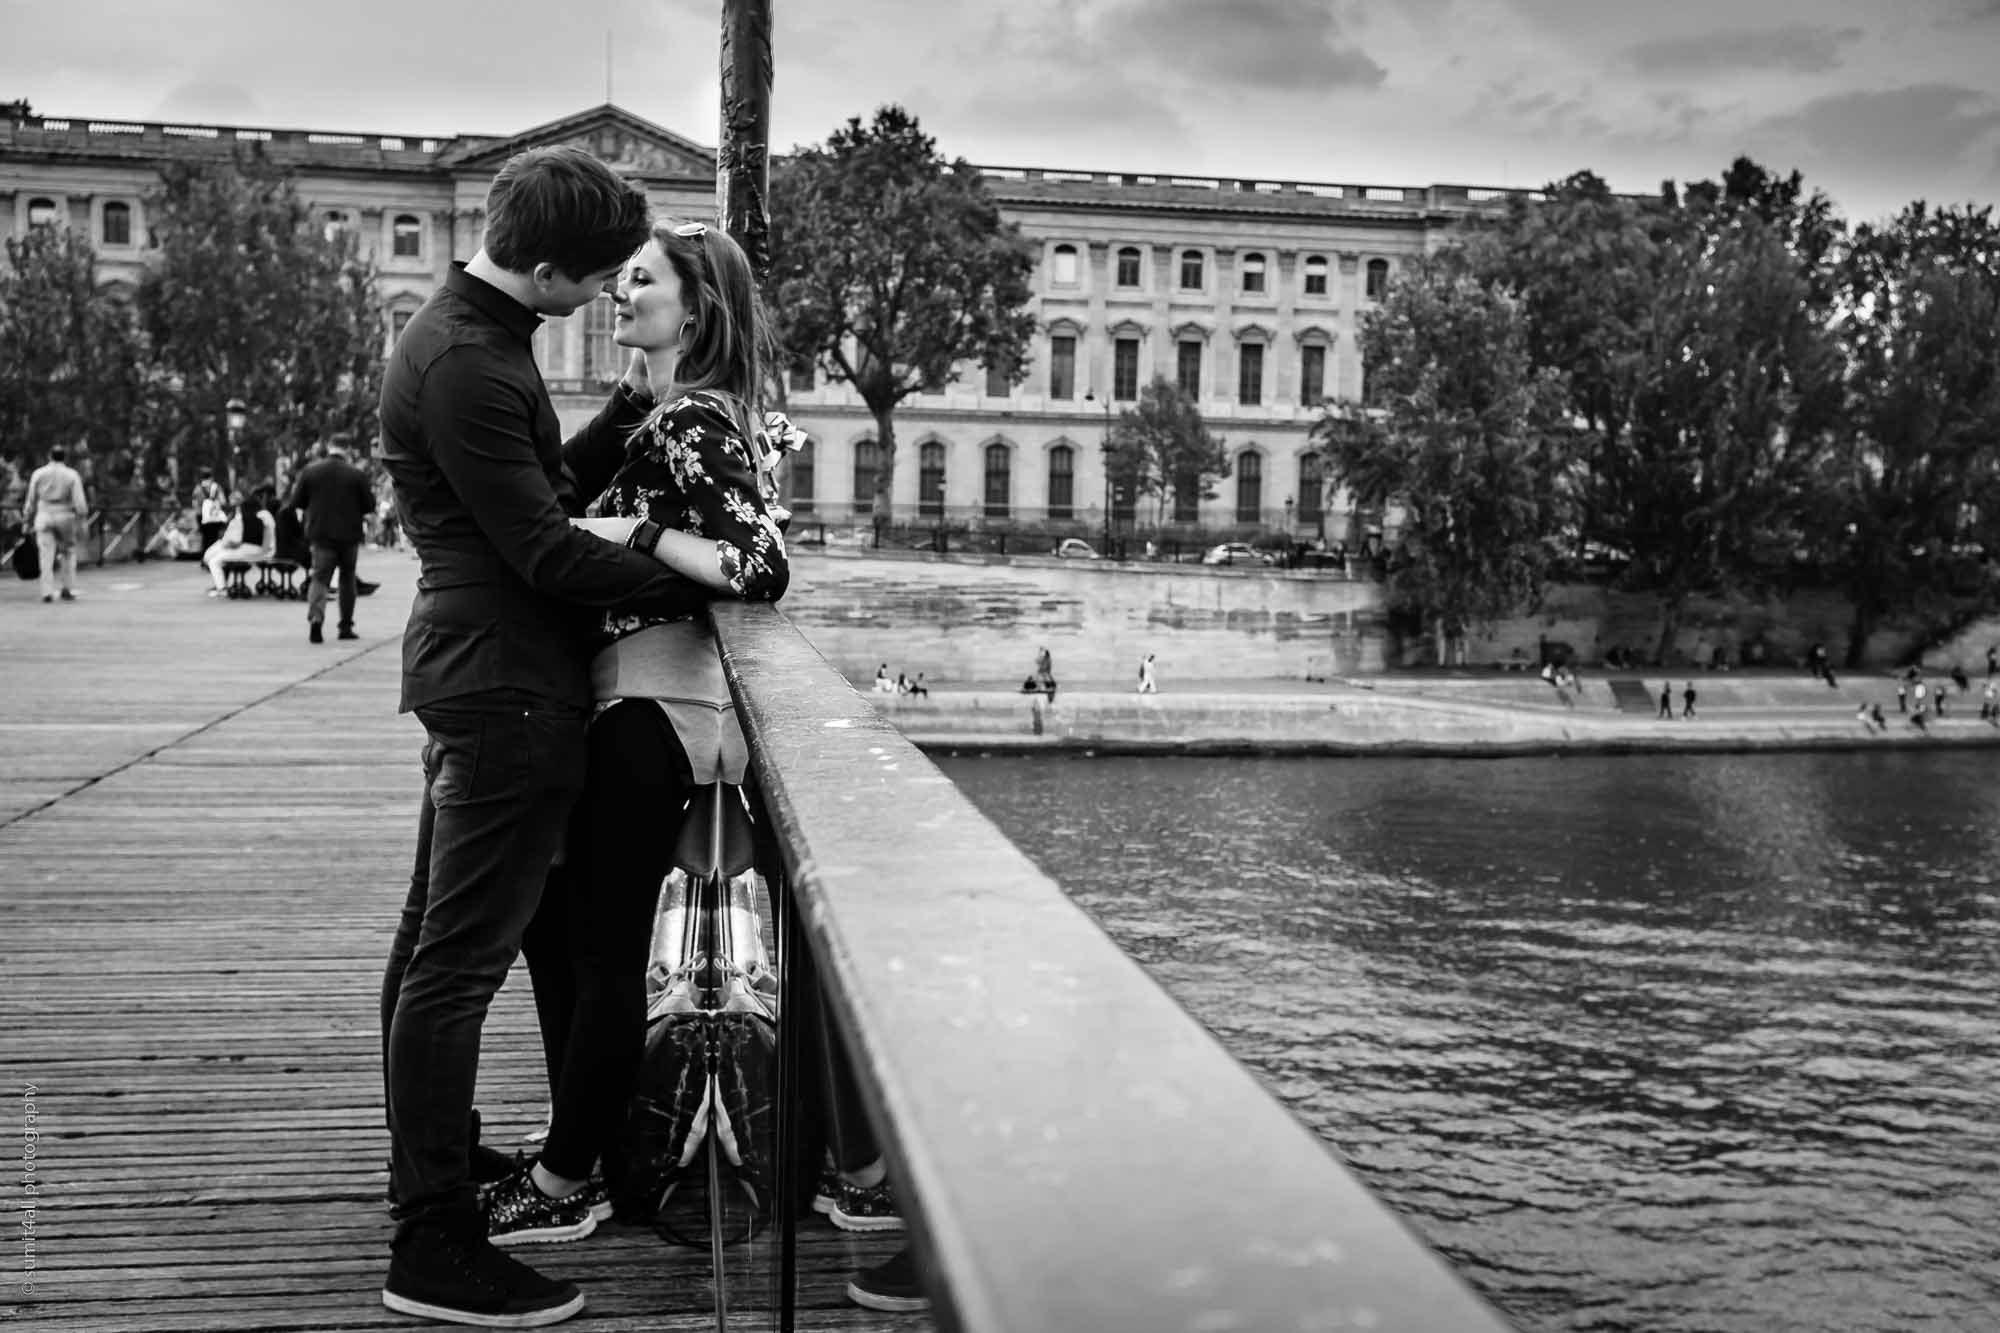 A couple kiss over a bridge on the Seine River in Paris